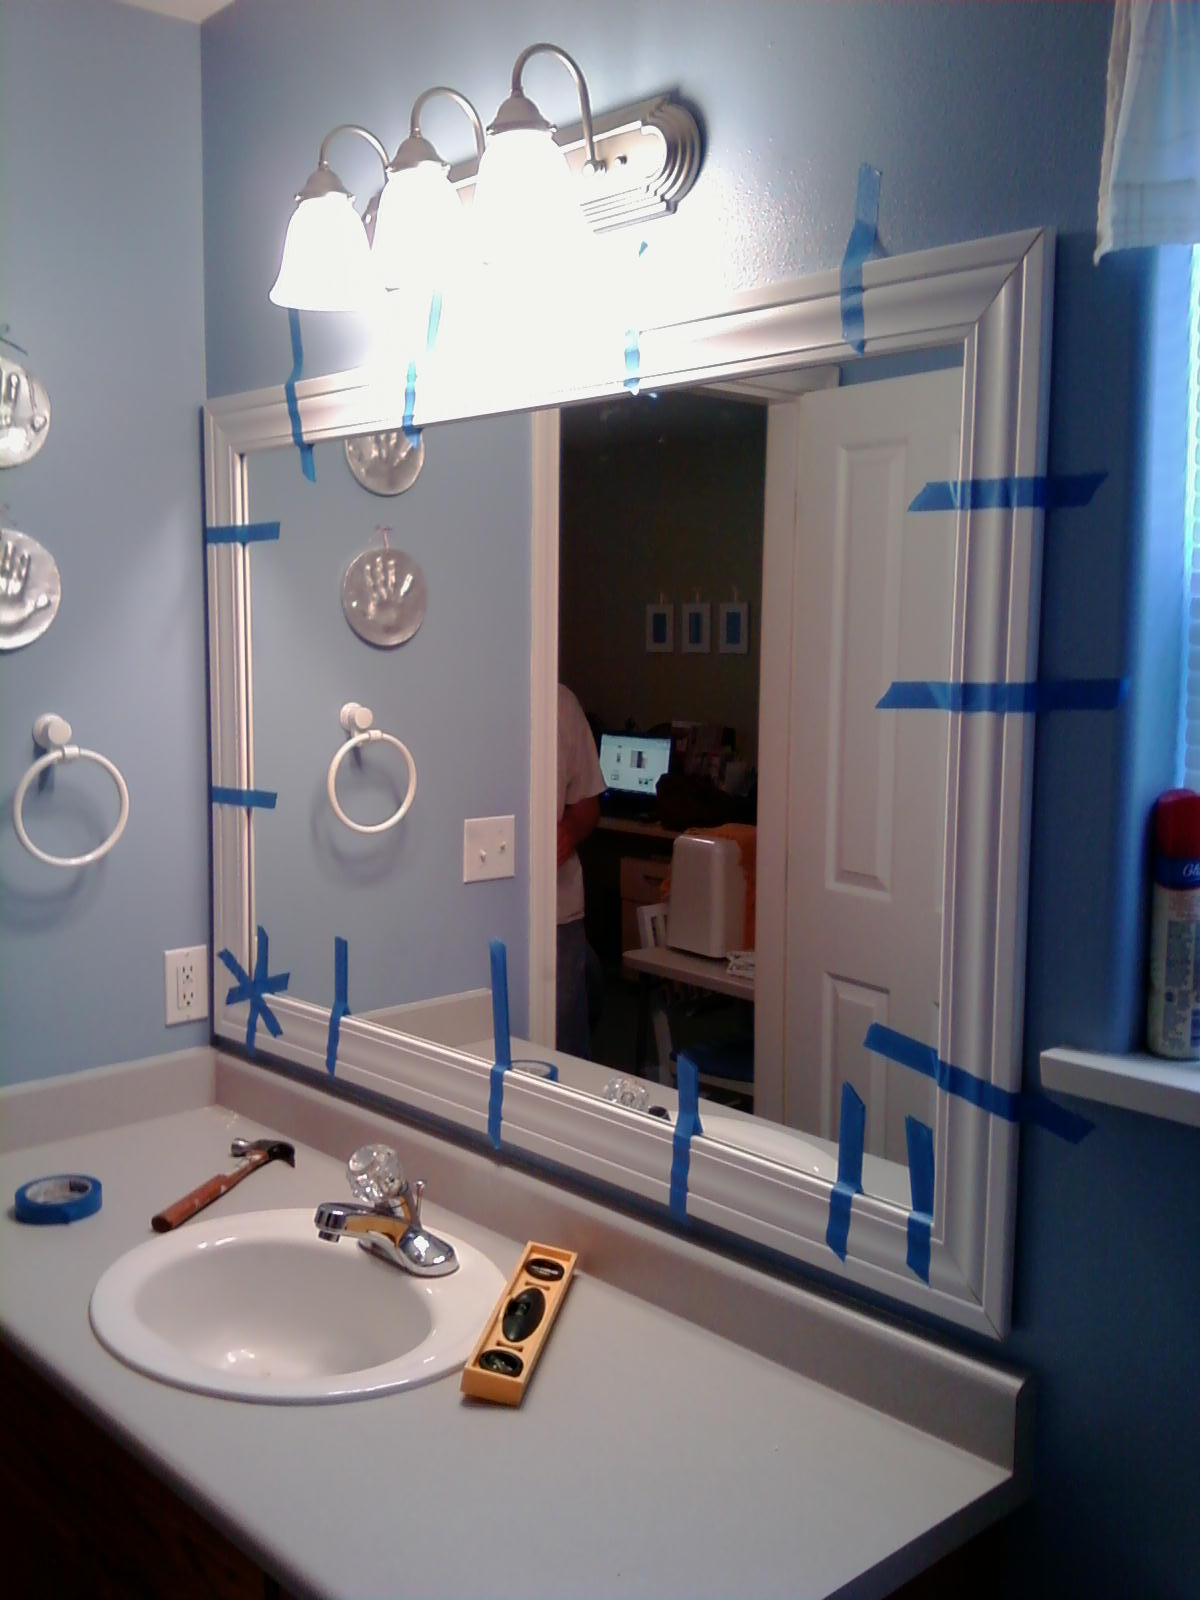 pictures of bathroom mirrors 23 original framed bathroom mirrors ideas eyagci 19973